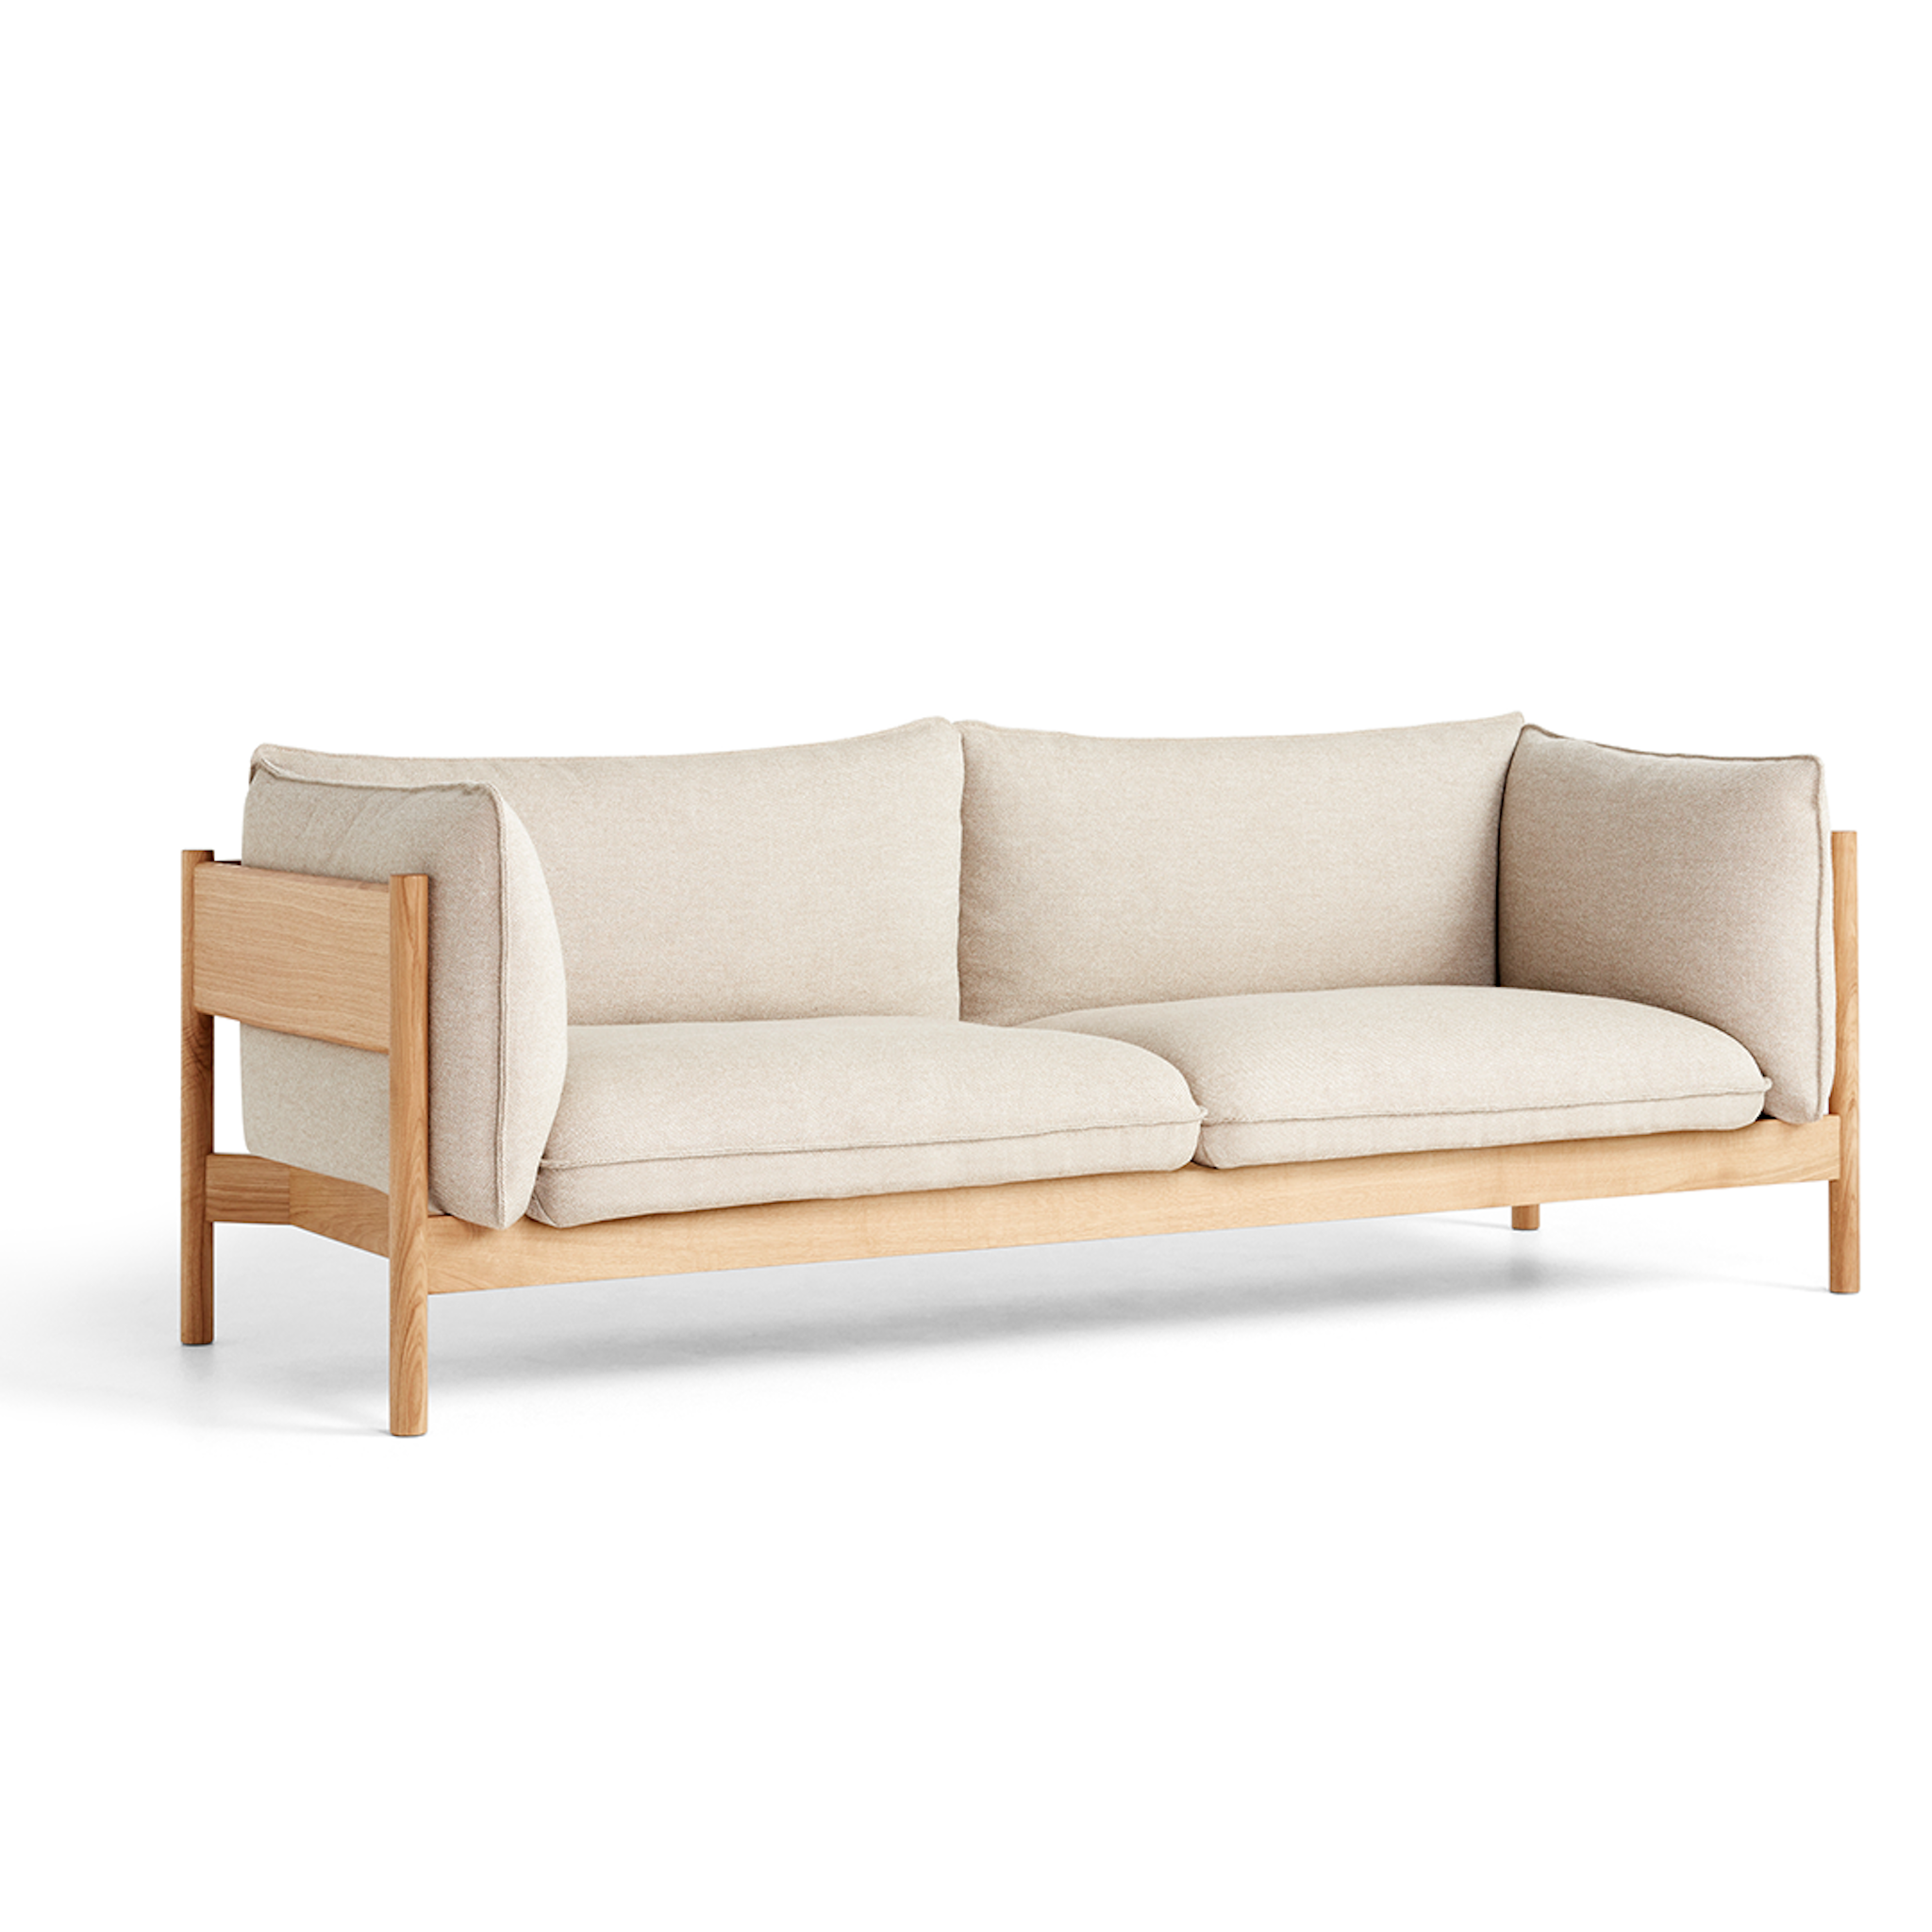 Arbour Sofa 3 Seater by Hay